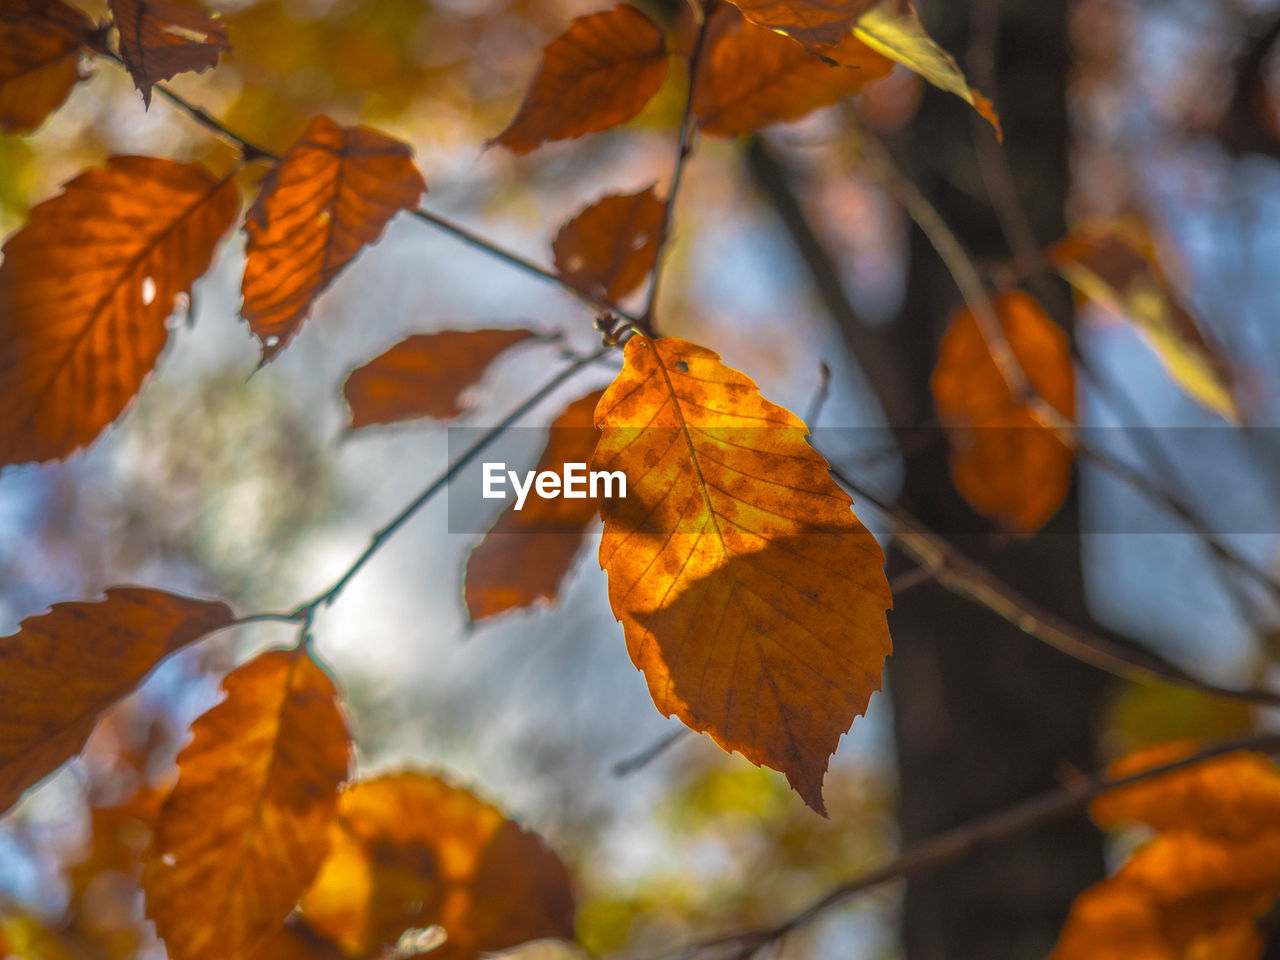 autumn, leaf, change, nature, orange color, beauty in nature, outdoors, day, focus on foreground, branch, no people, close-up, tree, low angle view, growth, maple, freshness